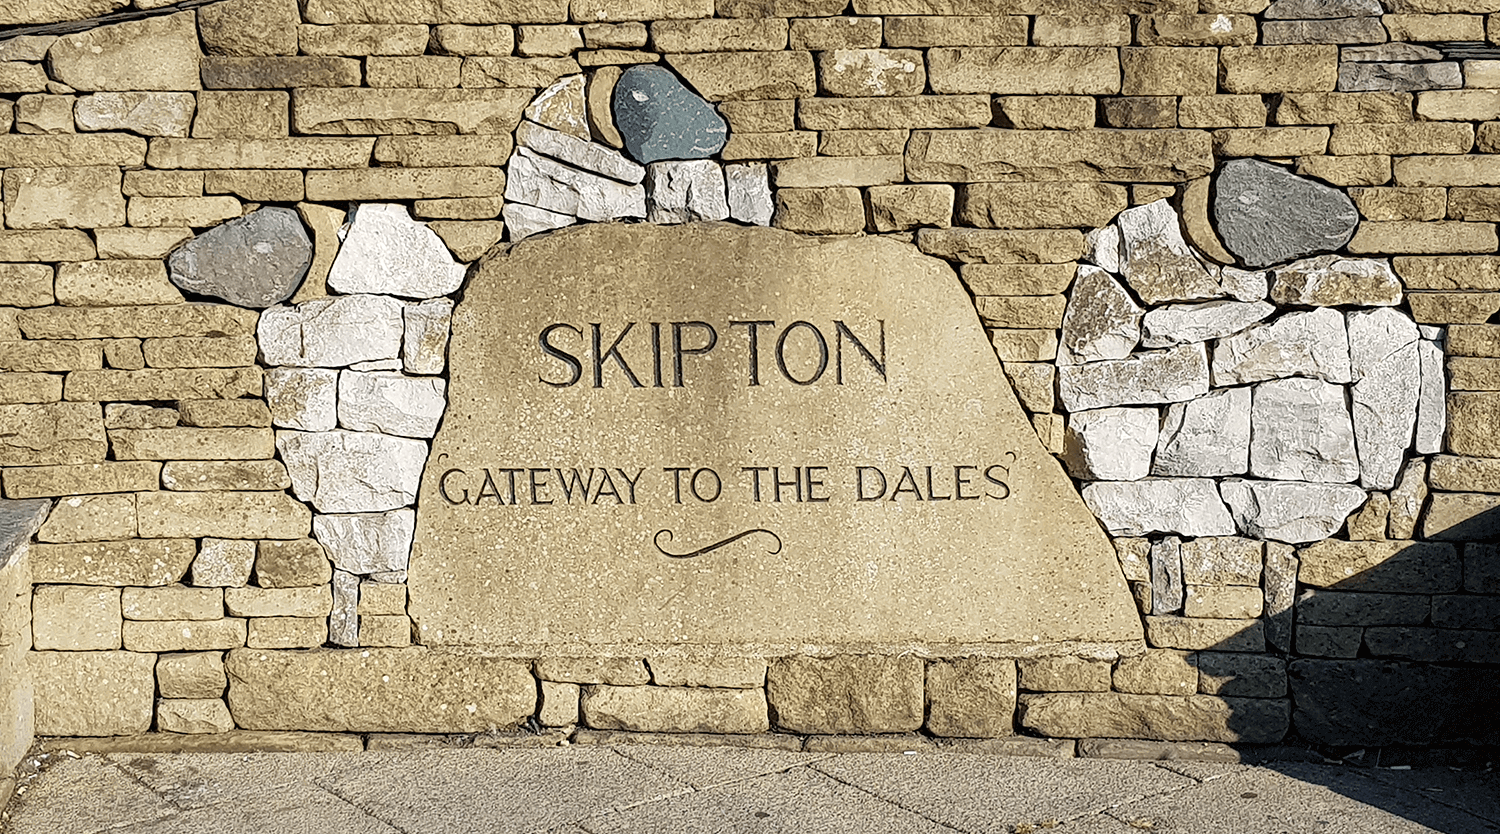 Skipton - Gateway to the Dales